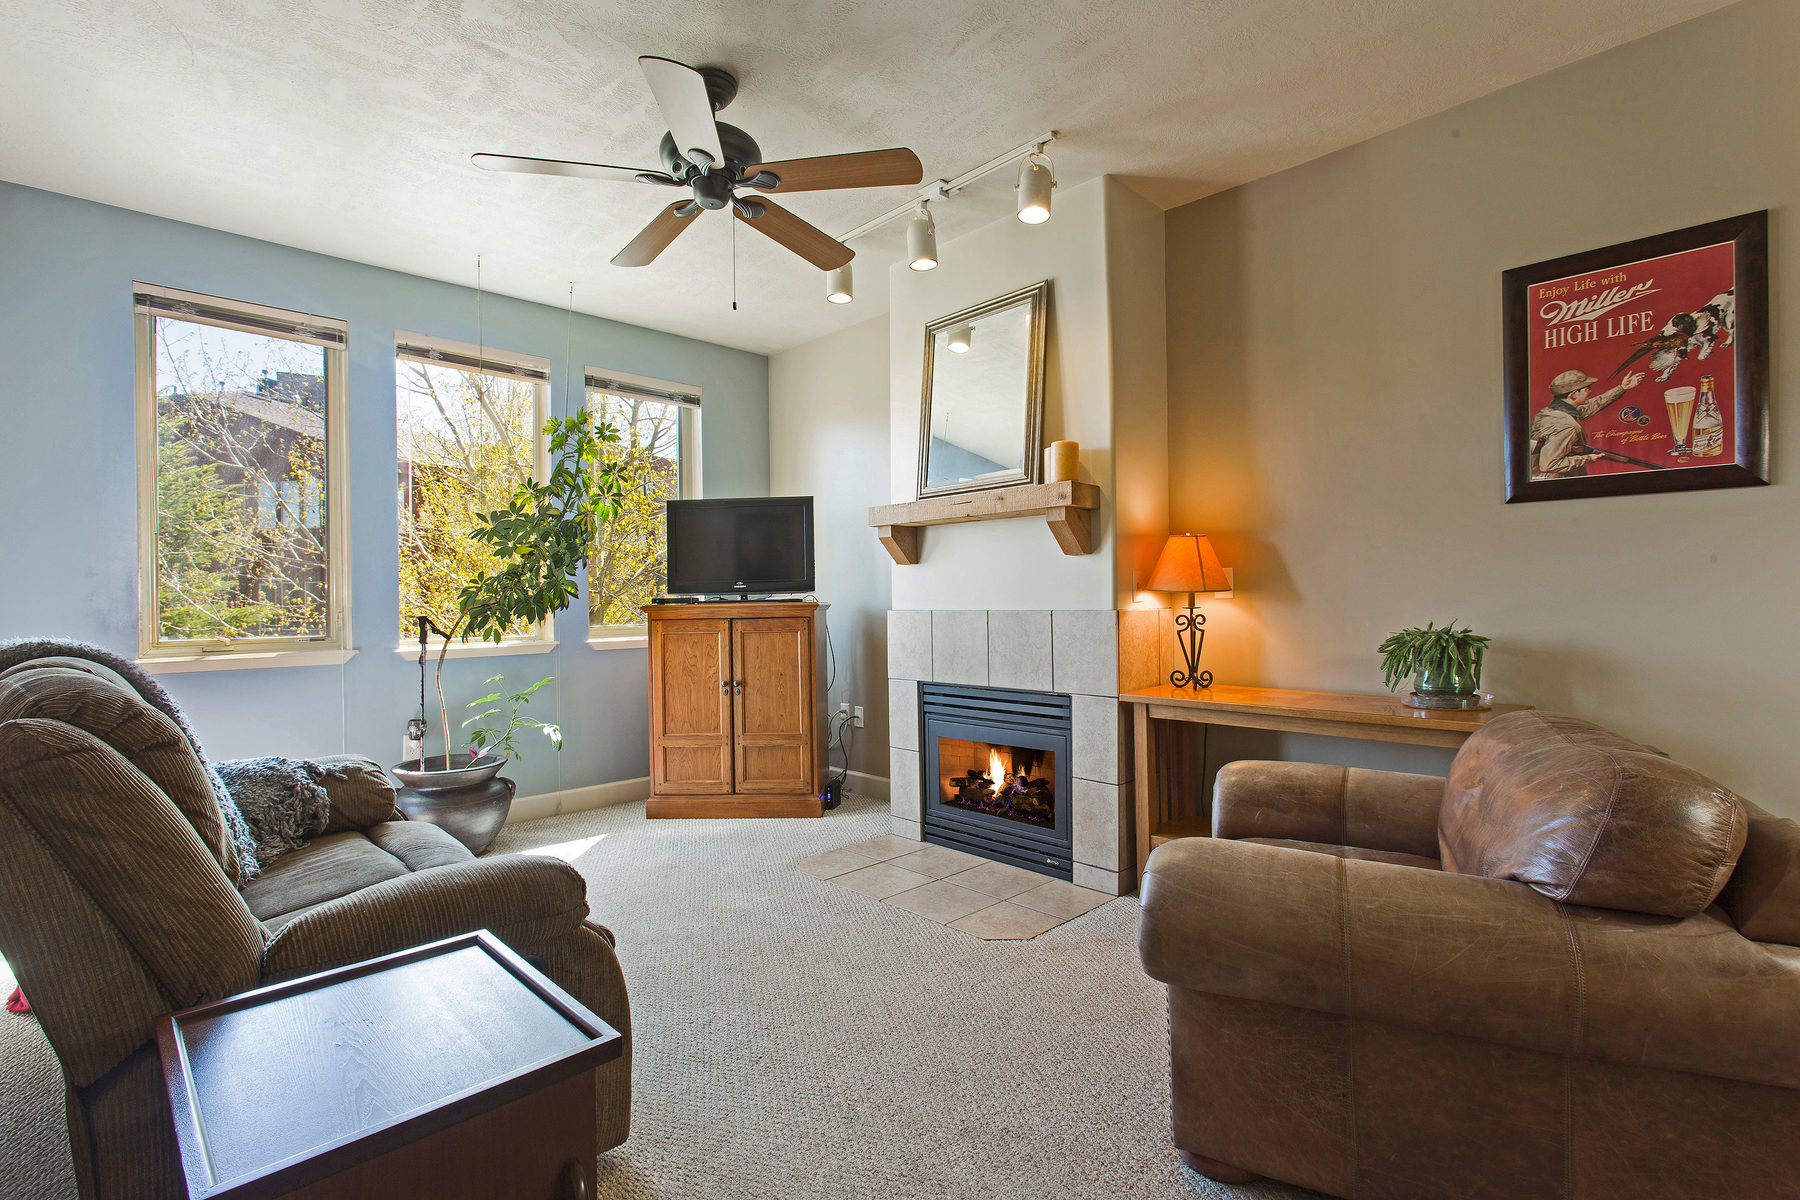 Condominium for Sale at Affordable Crestview One Bedroom Condo; Nightly Rental Eligible 6749 North 2200 West #B206 Park City, Utah, 84098 United States